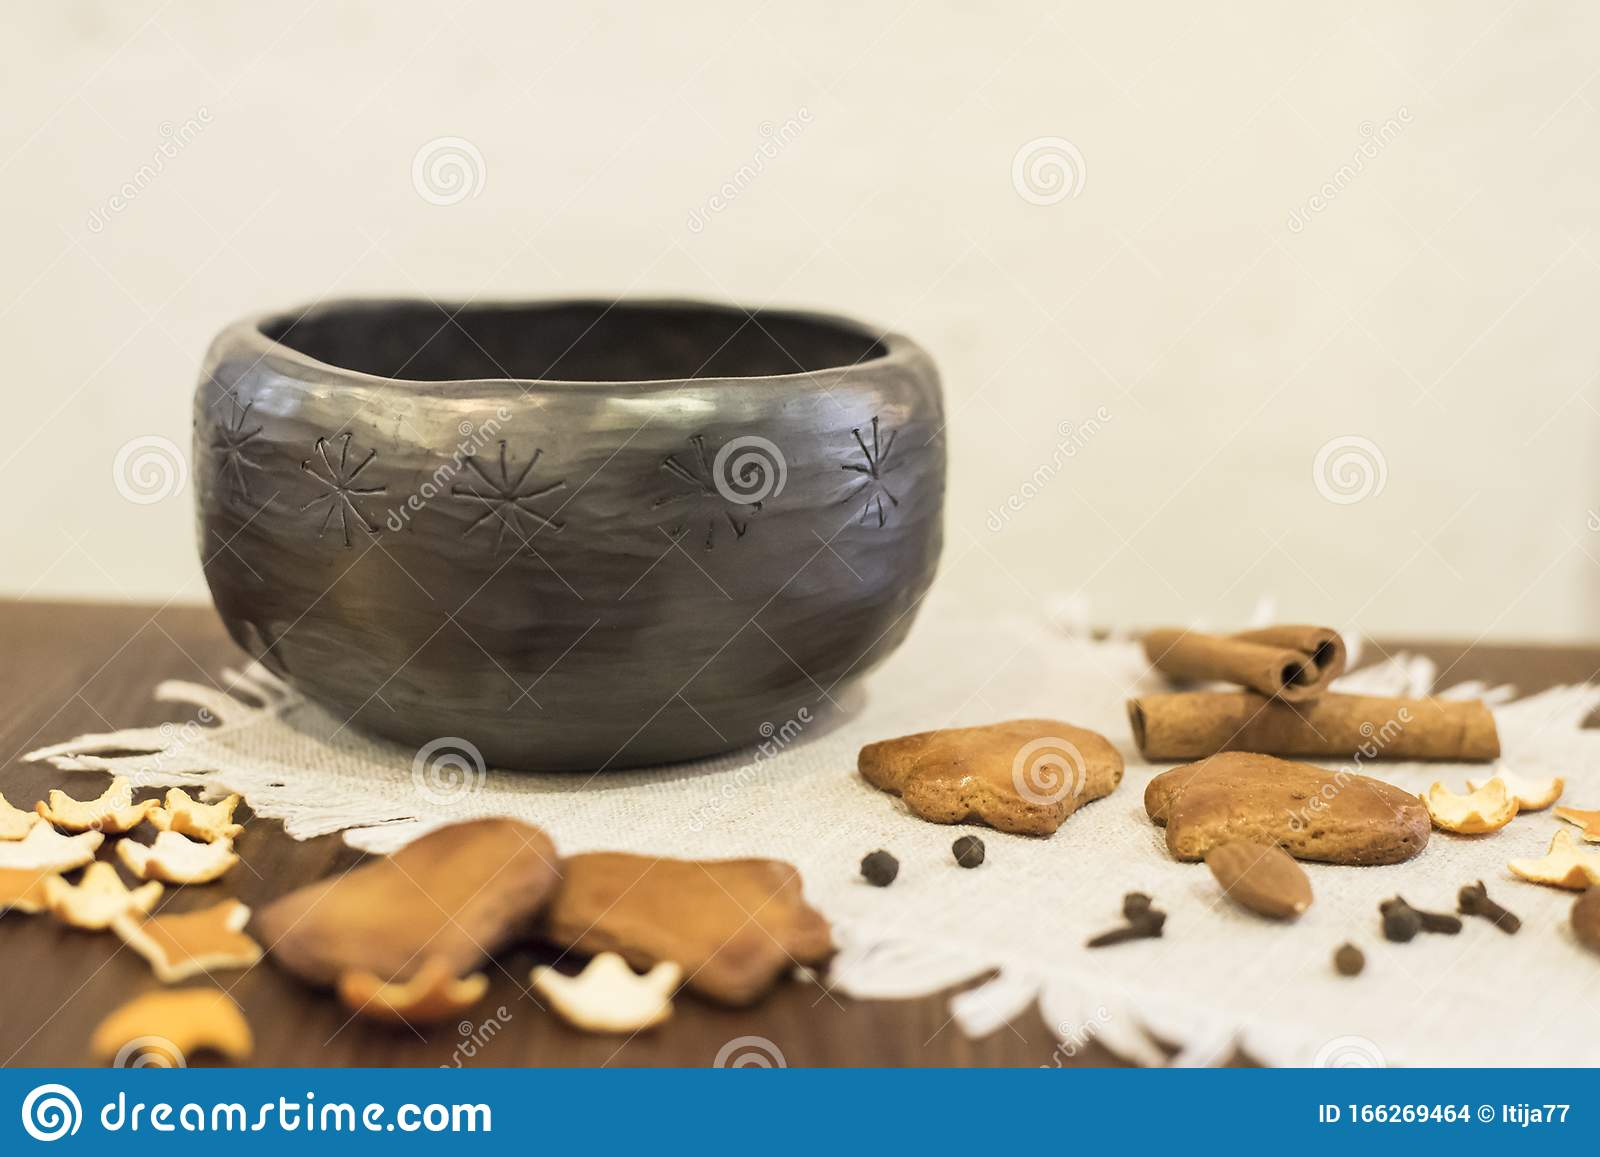 Unique Handmade Black Ceramic Bowl With Delicious Homemade Gingerbread Cookies Stock Photo Image Of Christmas Decoration 166269464